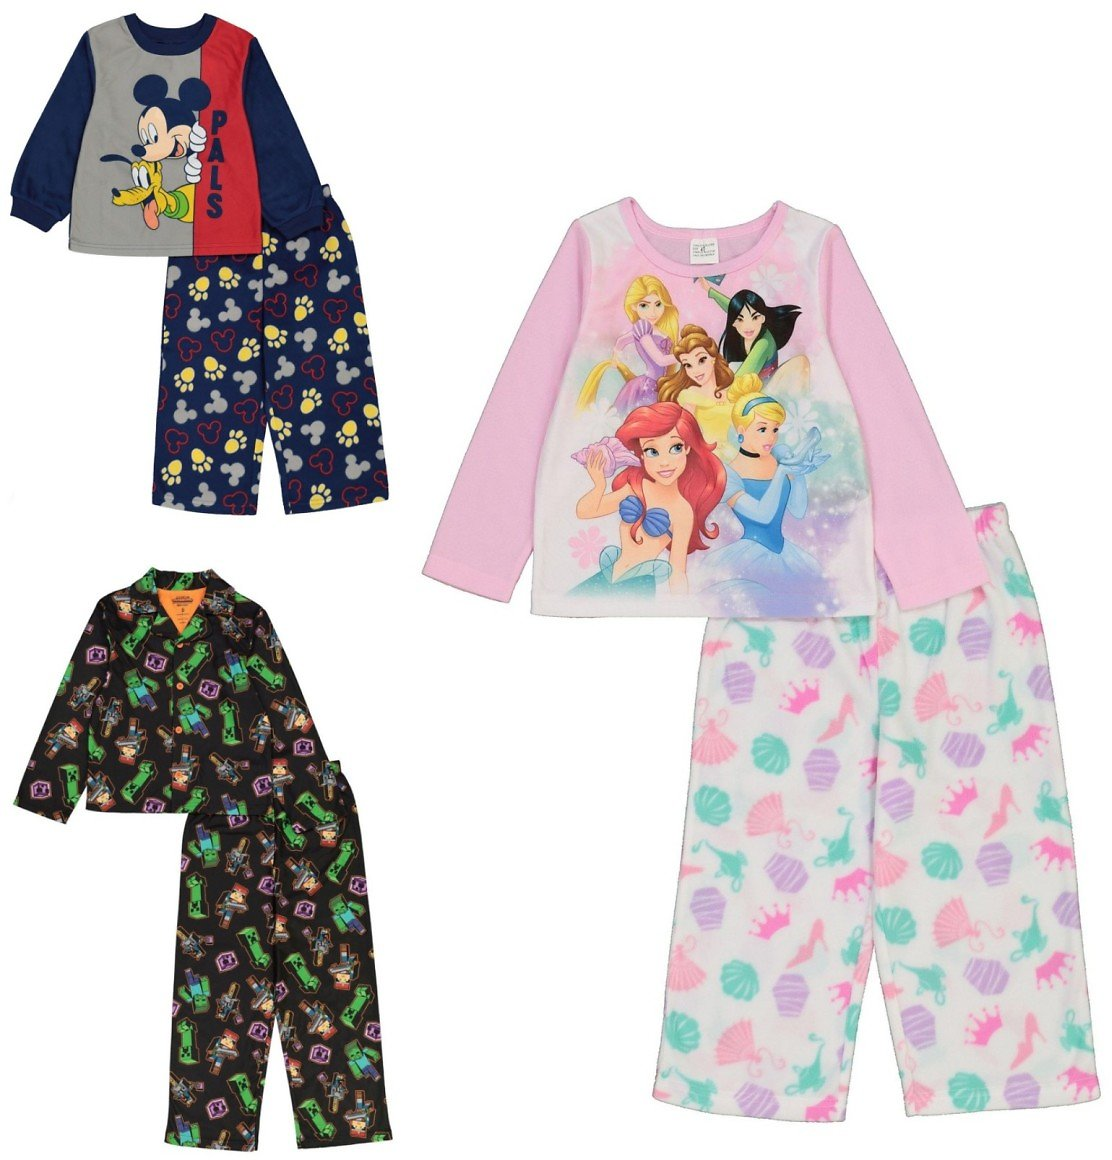 AME Toddlers' 2-piece Pajama Sets - Multiple Styles